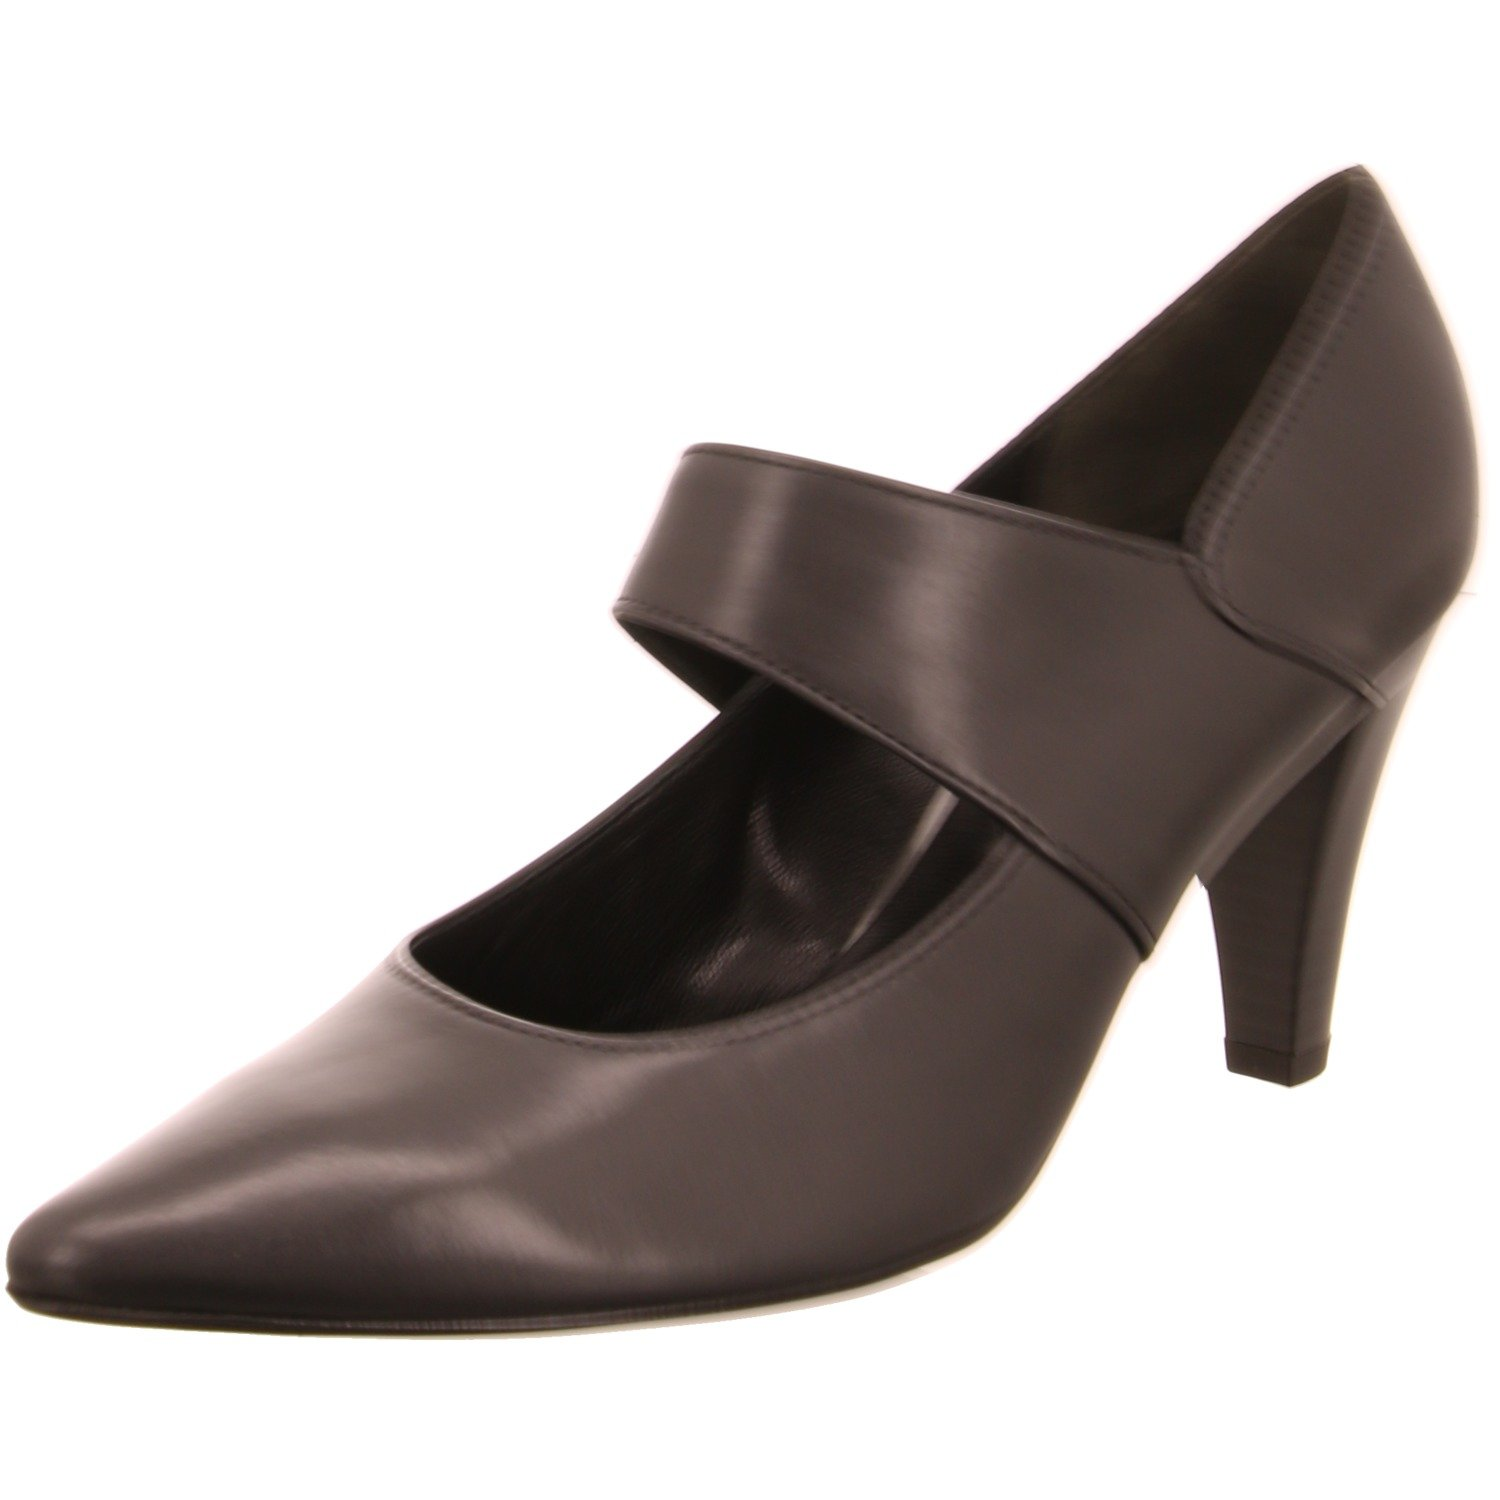 acfc3d89f05997 Gabor Women Pumps Black